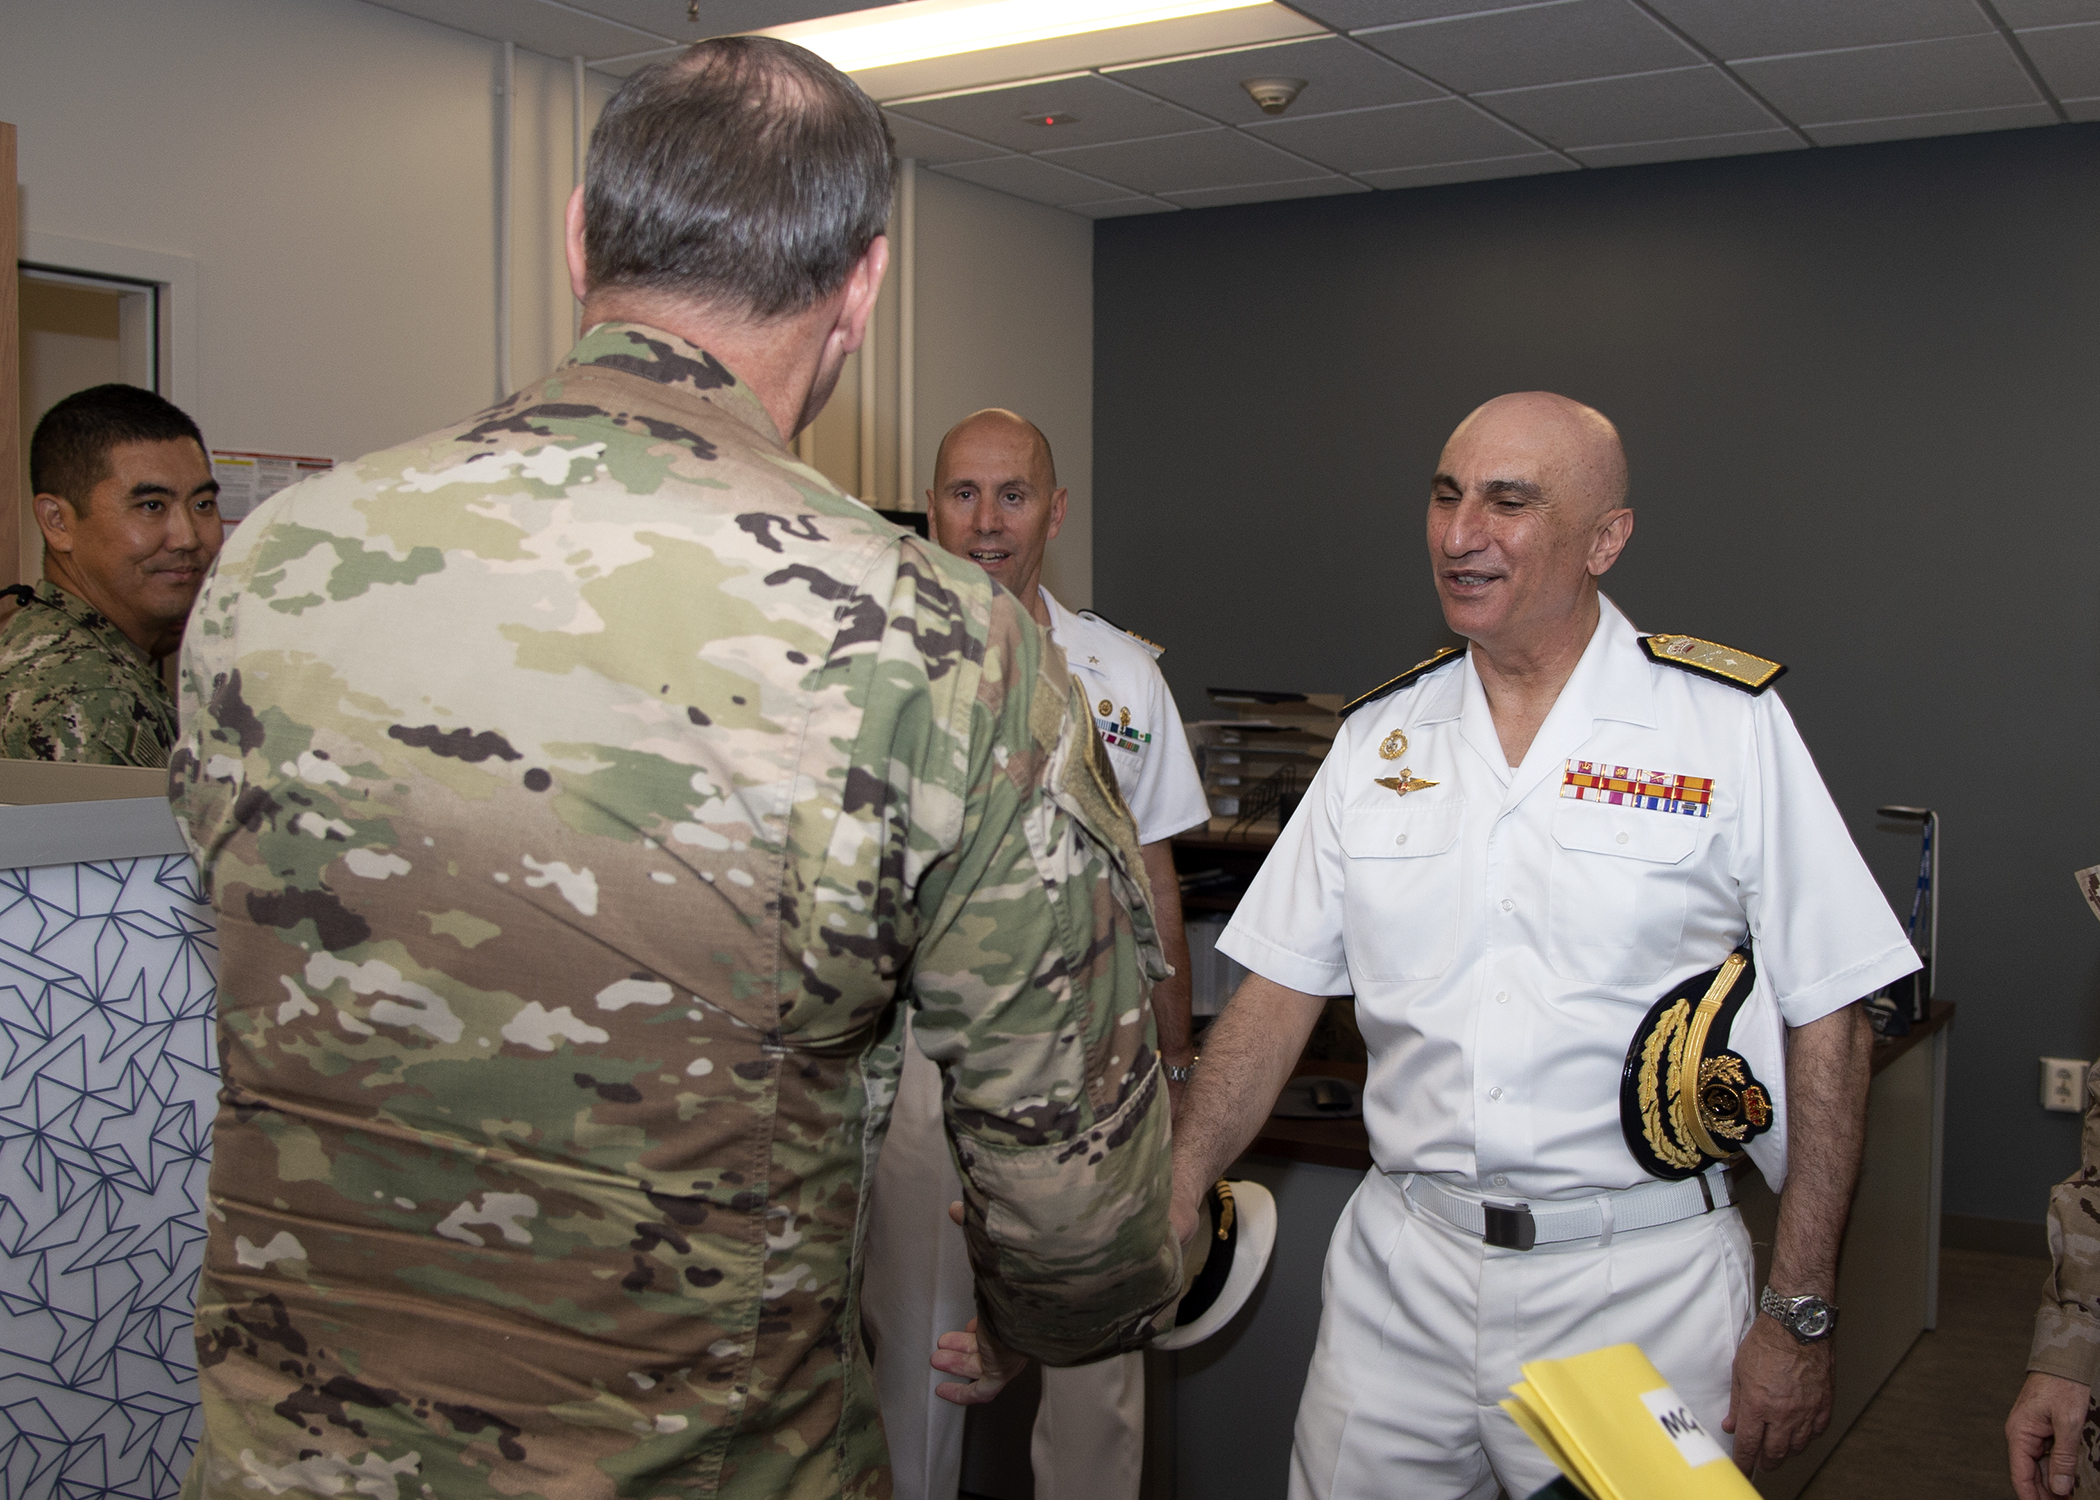 U.S. Army Maj. Gen. James D. Craig, left, commanding general, Combined Joint Task Force-Horn of Africa (CJTF-HOA), shakes hands with Spanish Navy Rear Adm. Ricardo A. Hernández, force commander, European Union Naval Force ATALANTA, at Camp Lemonnier, Djibouti, March 8, 2019. Hernández visited CJTF-HOA during a theater turnover with European Union partners. (U.S. Navy photo by Mass Communication Specialist 1st Class Nick Scott)